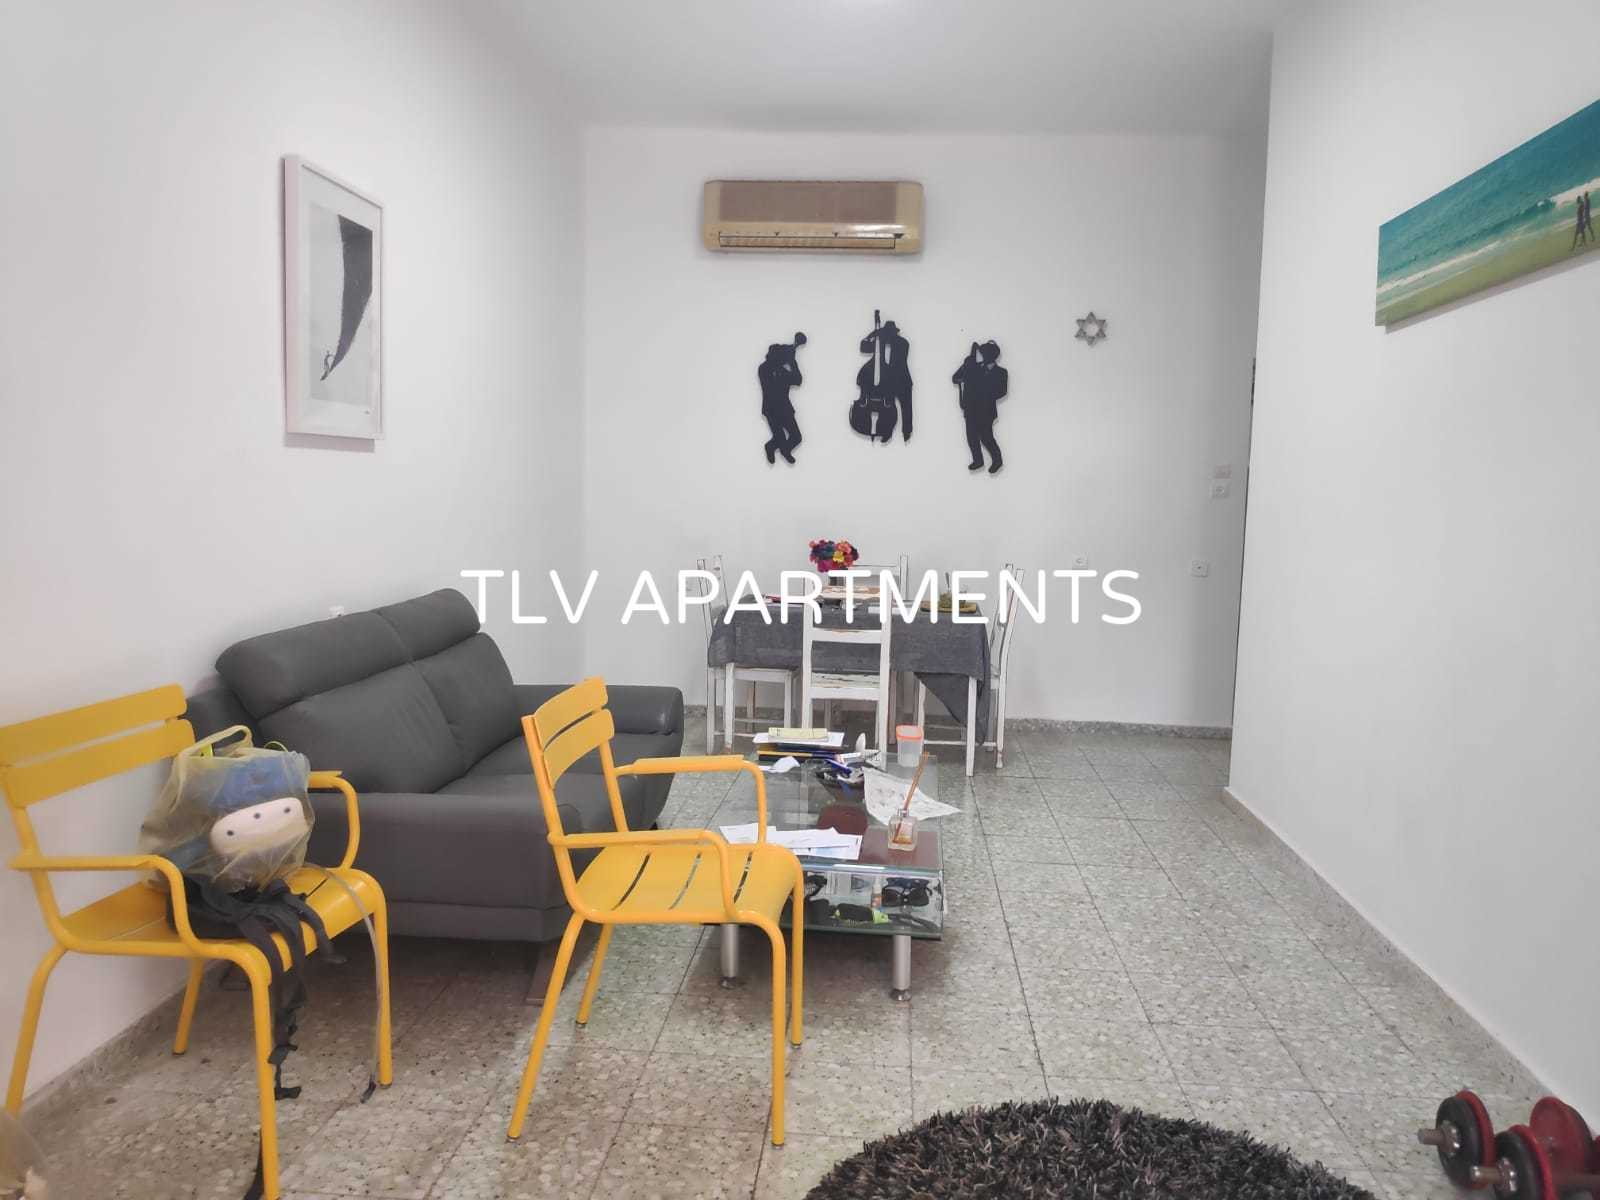 Apartment with 2 separate entrances